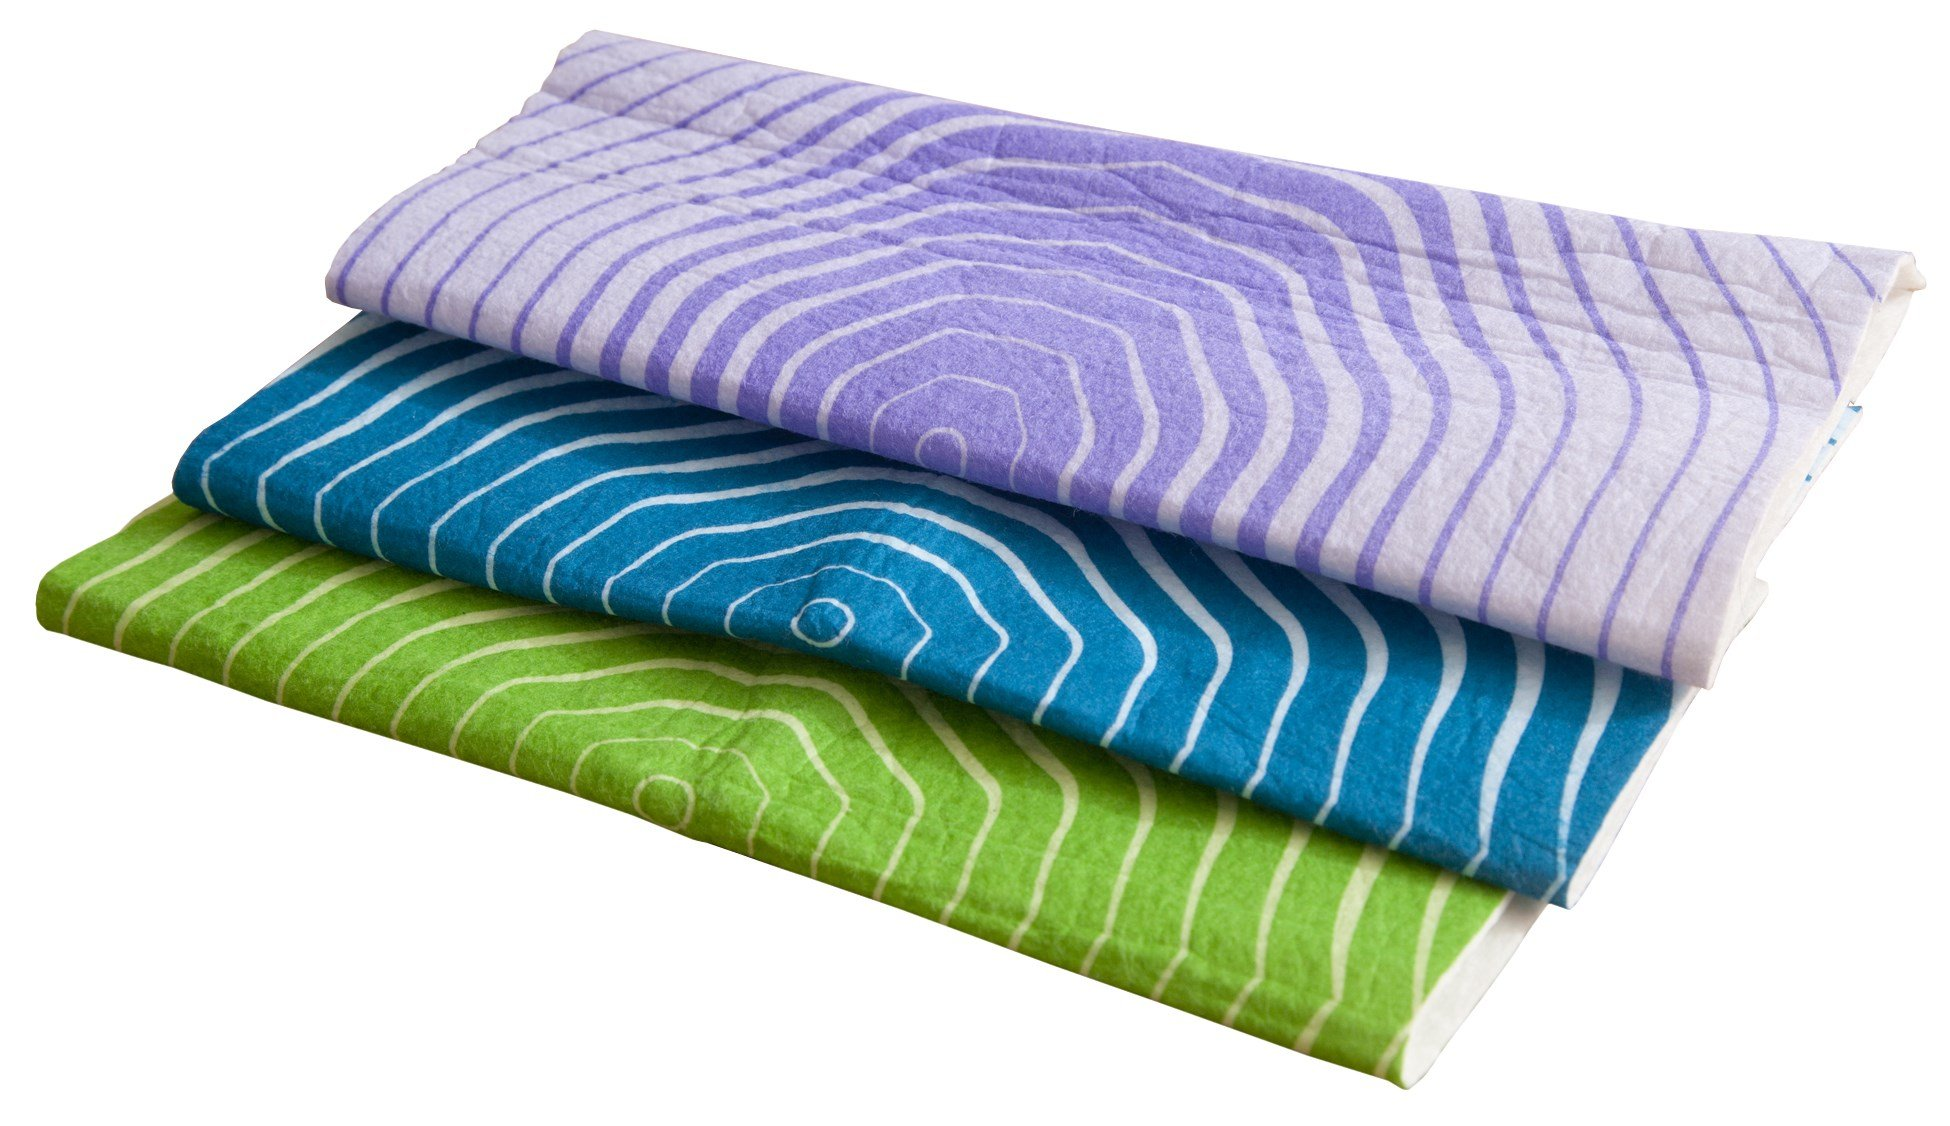 Full Circle Pulp Friction Wood Fiber Absorbent Cleaning Cloths, Set of 3